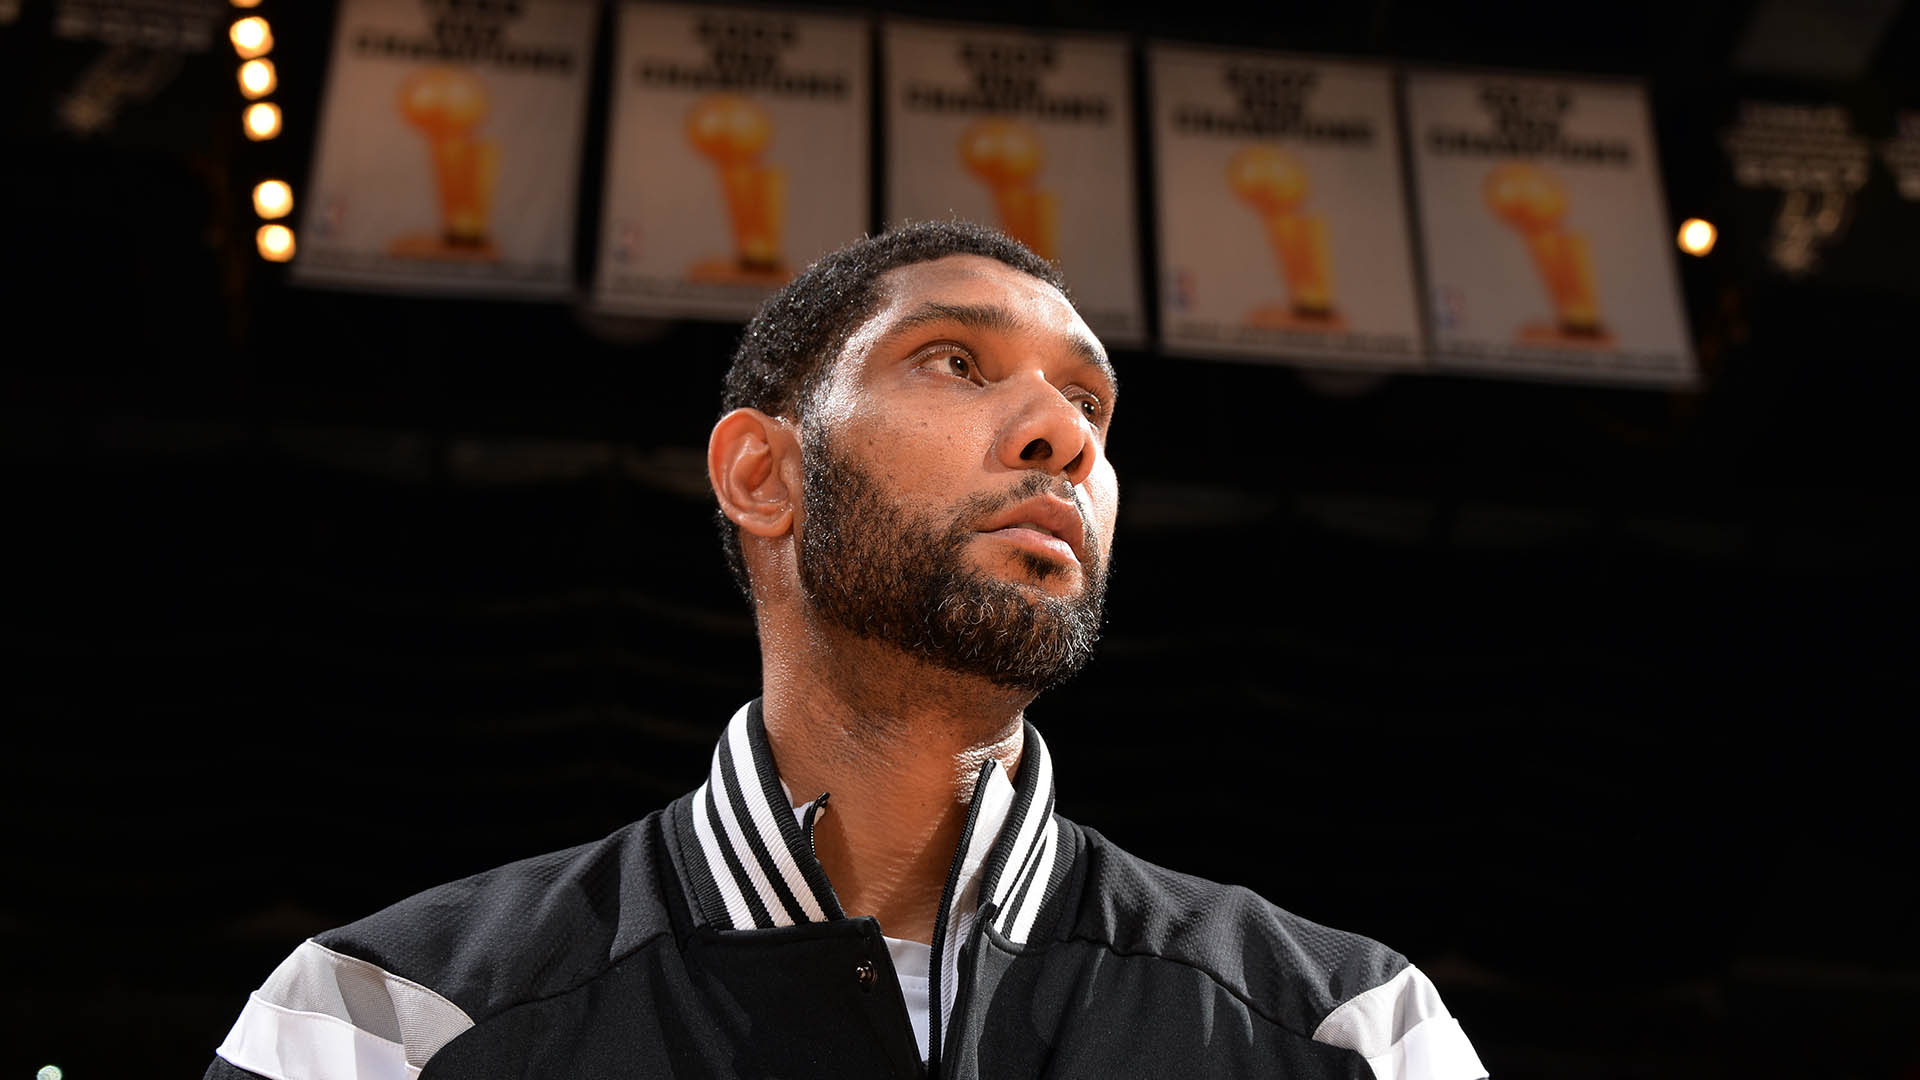 Humility marks Duncan's Hall of Fame journey